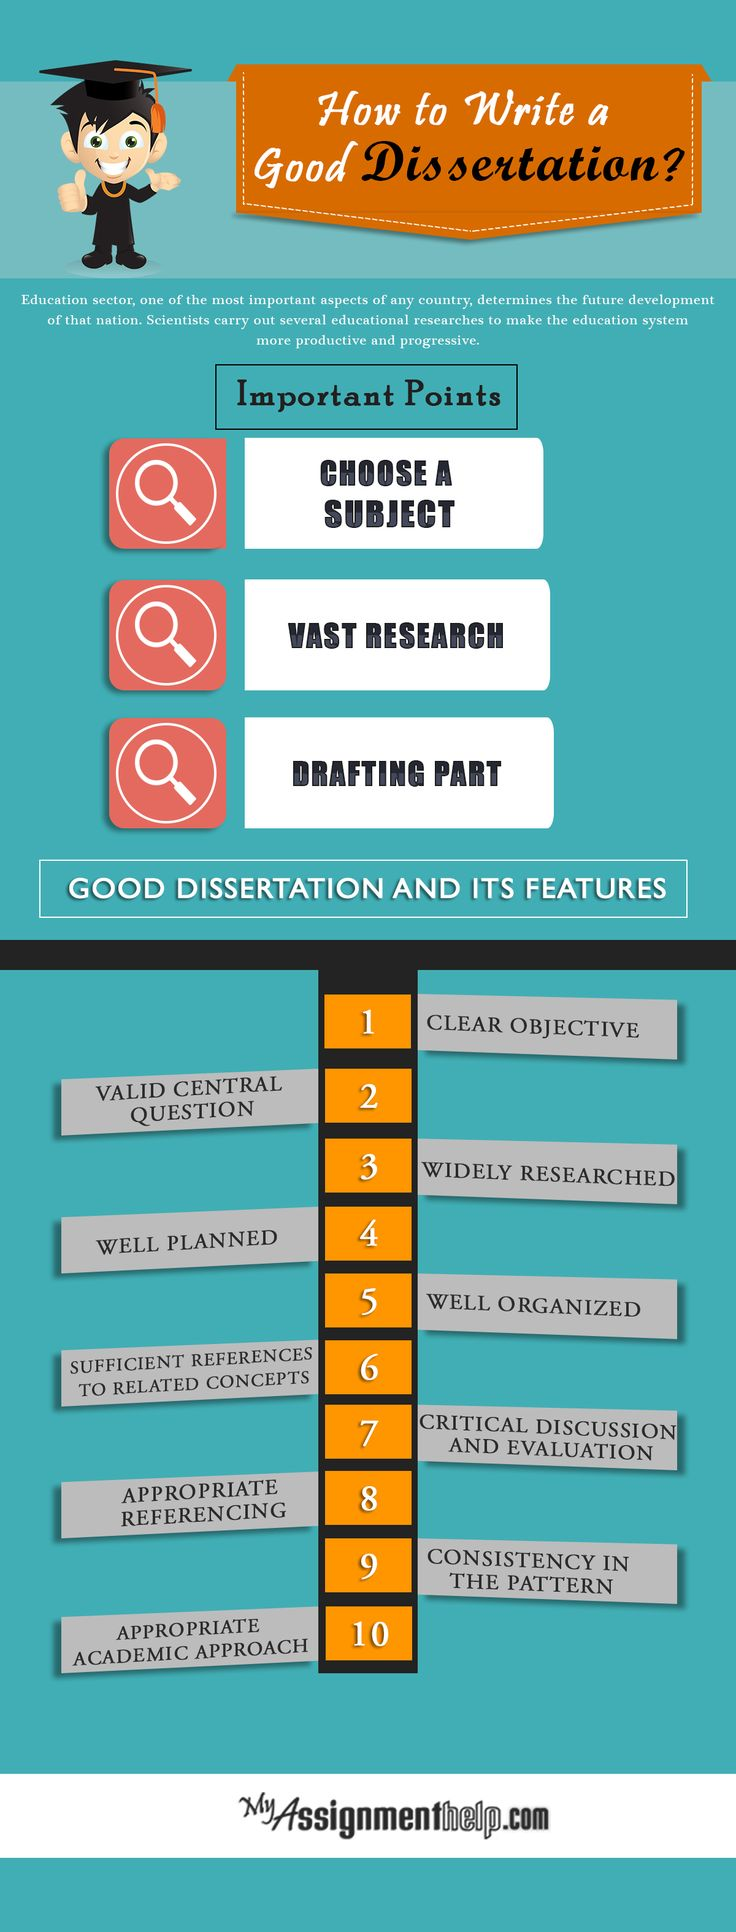 how do i write a doctoral dissertation in path to success Path to success write a doctoral dissertation about protecting the environment october 16, 2017 edexcel a2 physics coursework mark scheme ib essay writing.